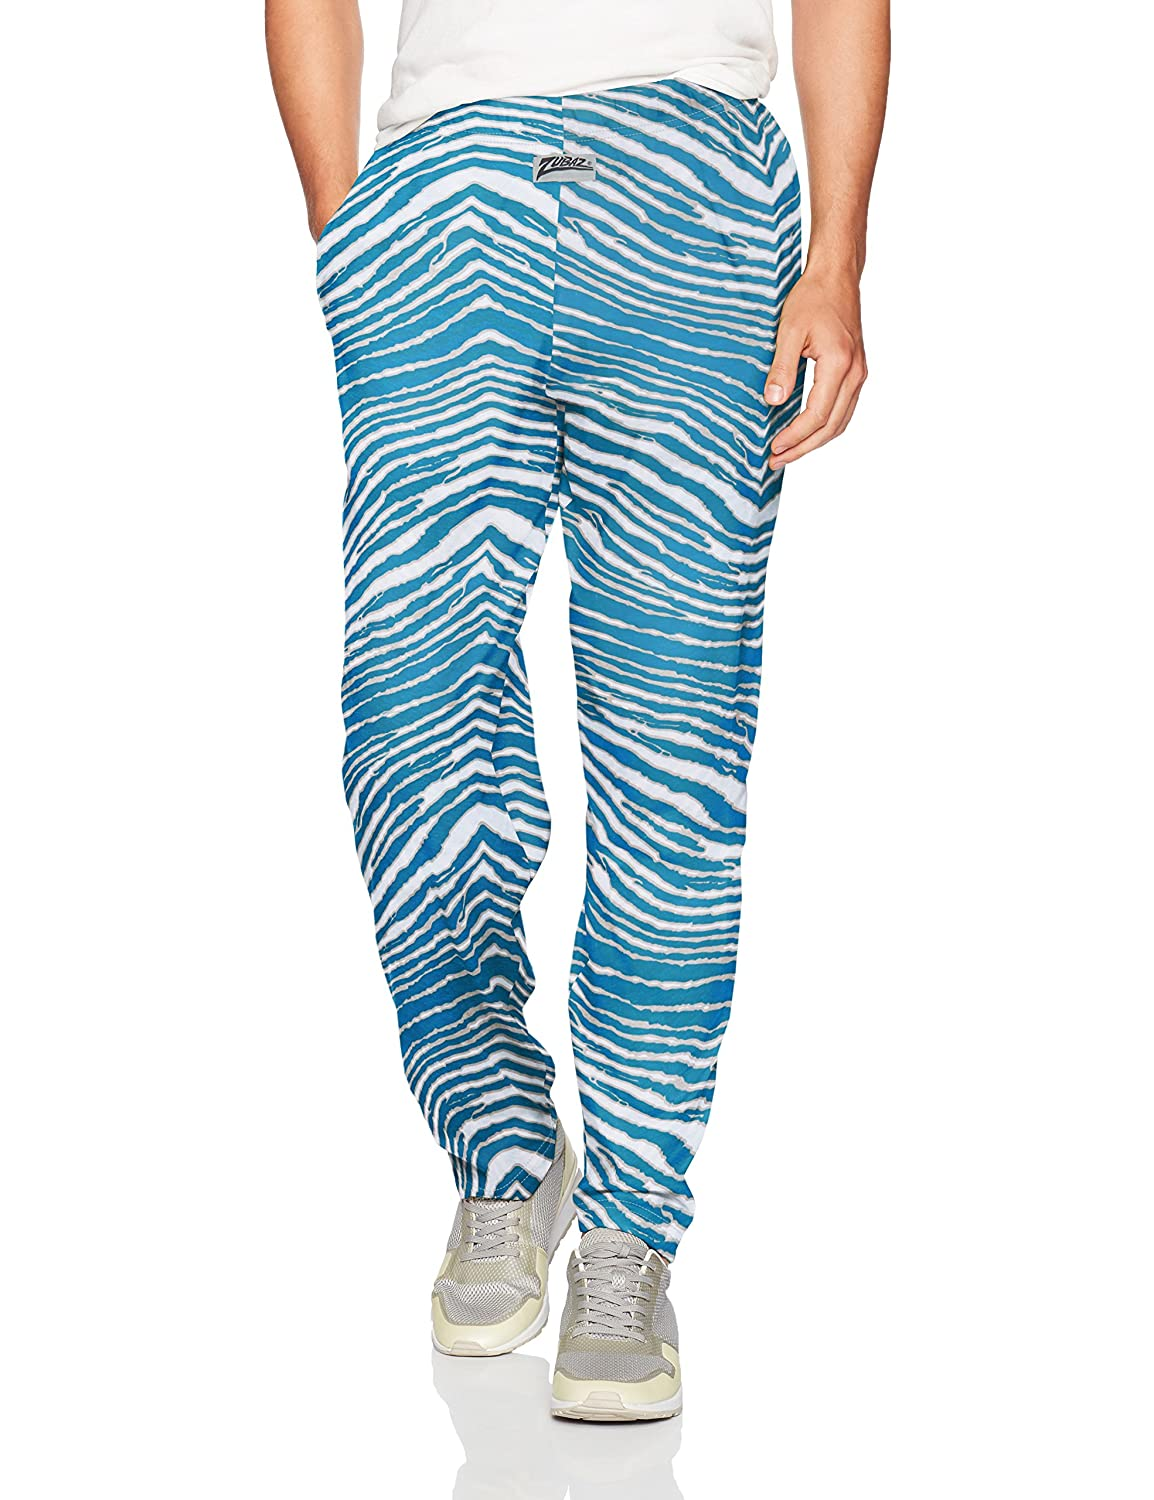 Zubaz Mens Classic Printed Lounge Pants